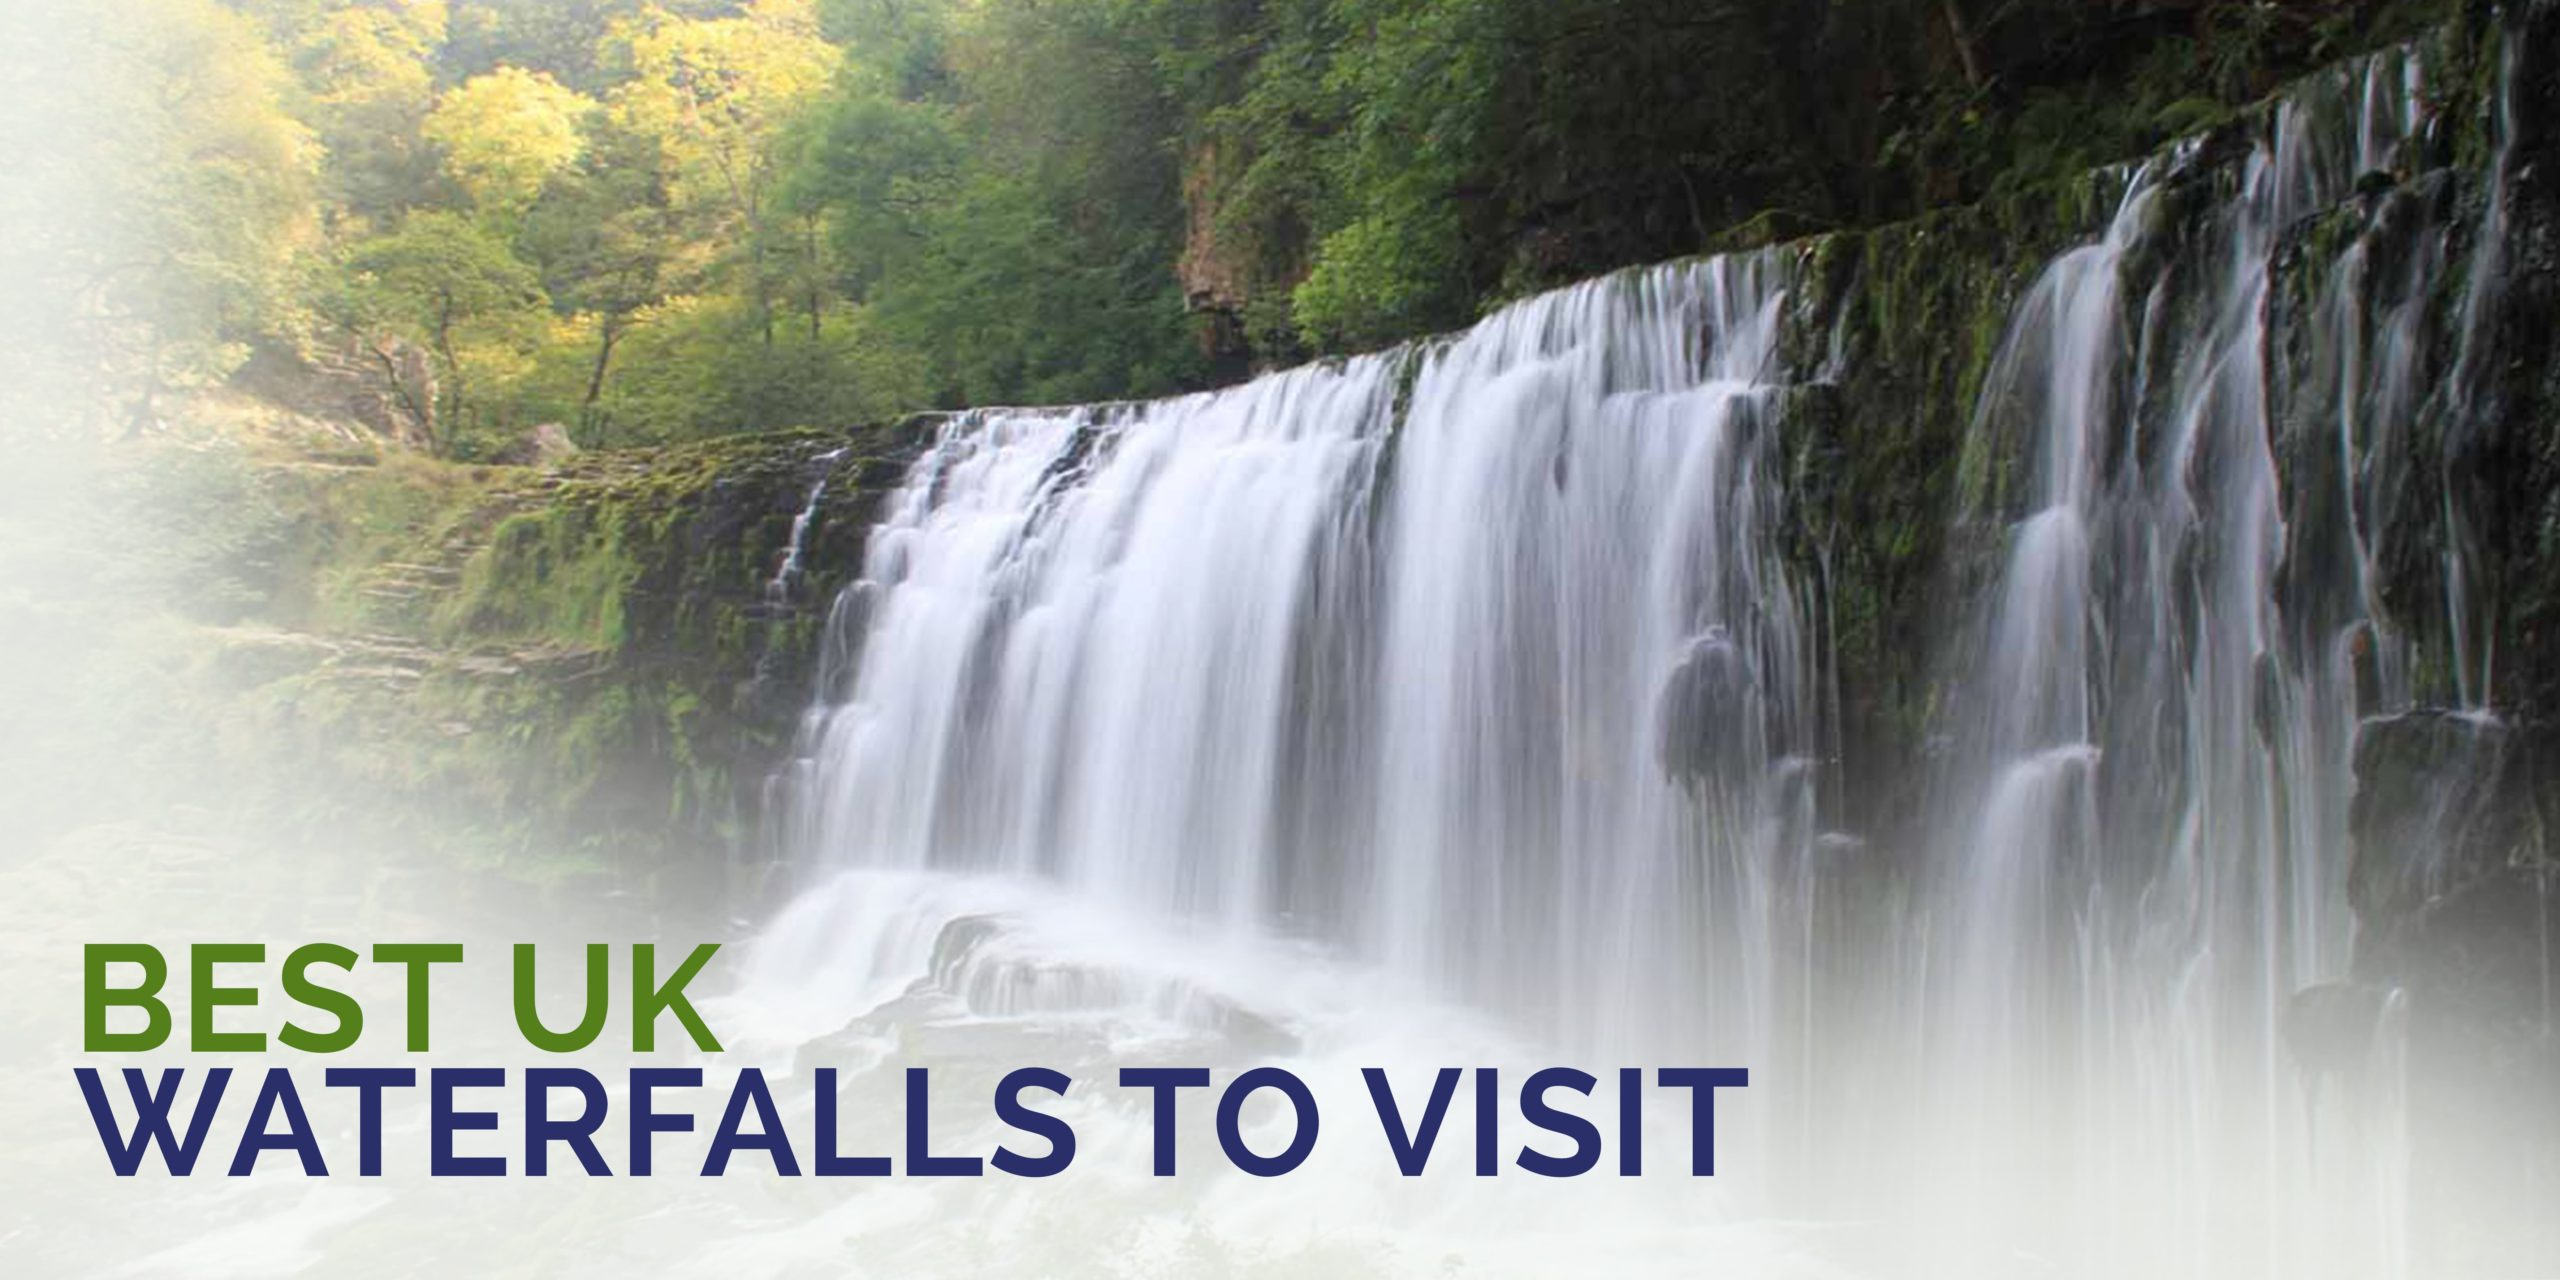 Best uk waterfalls to visit